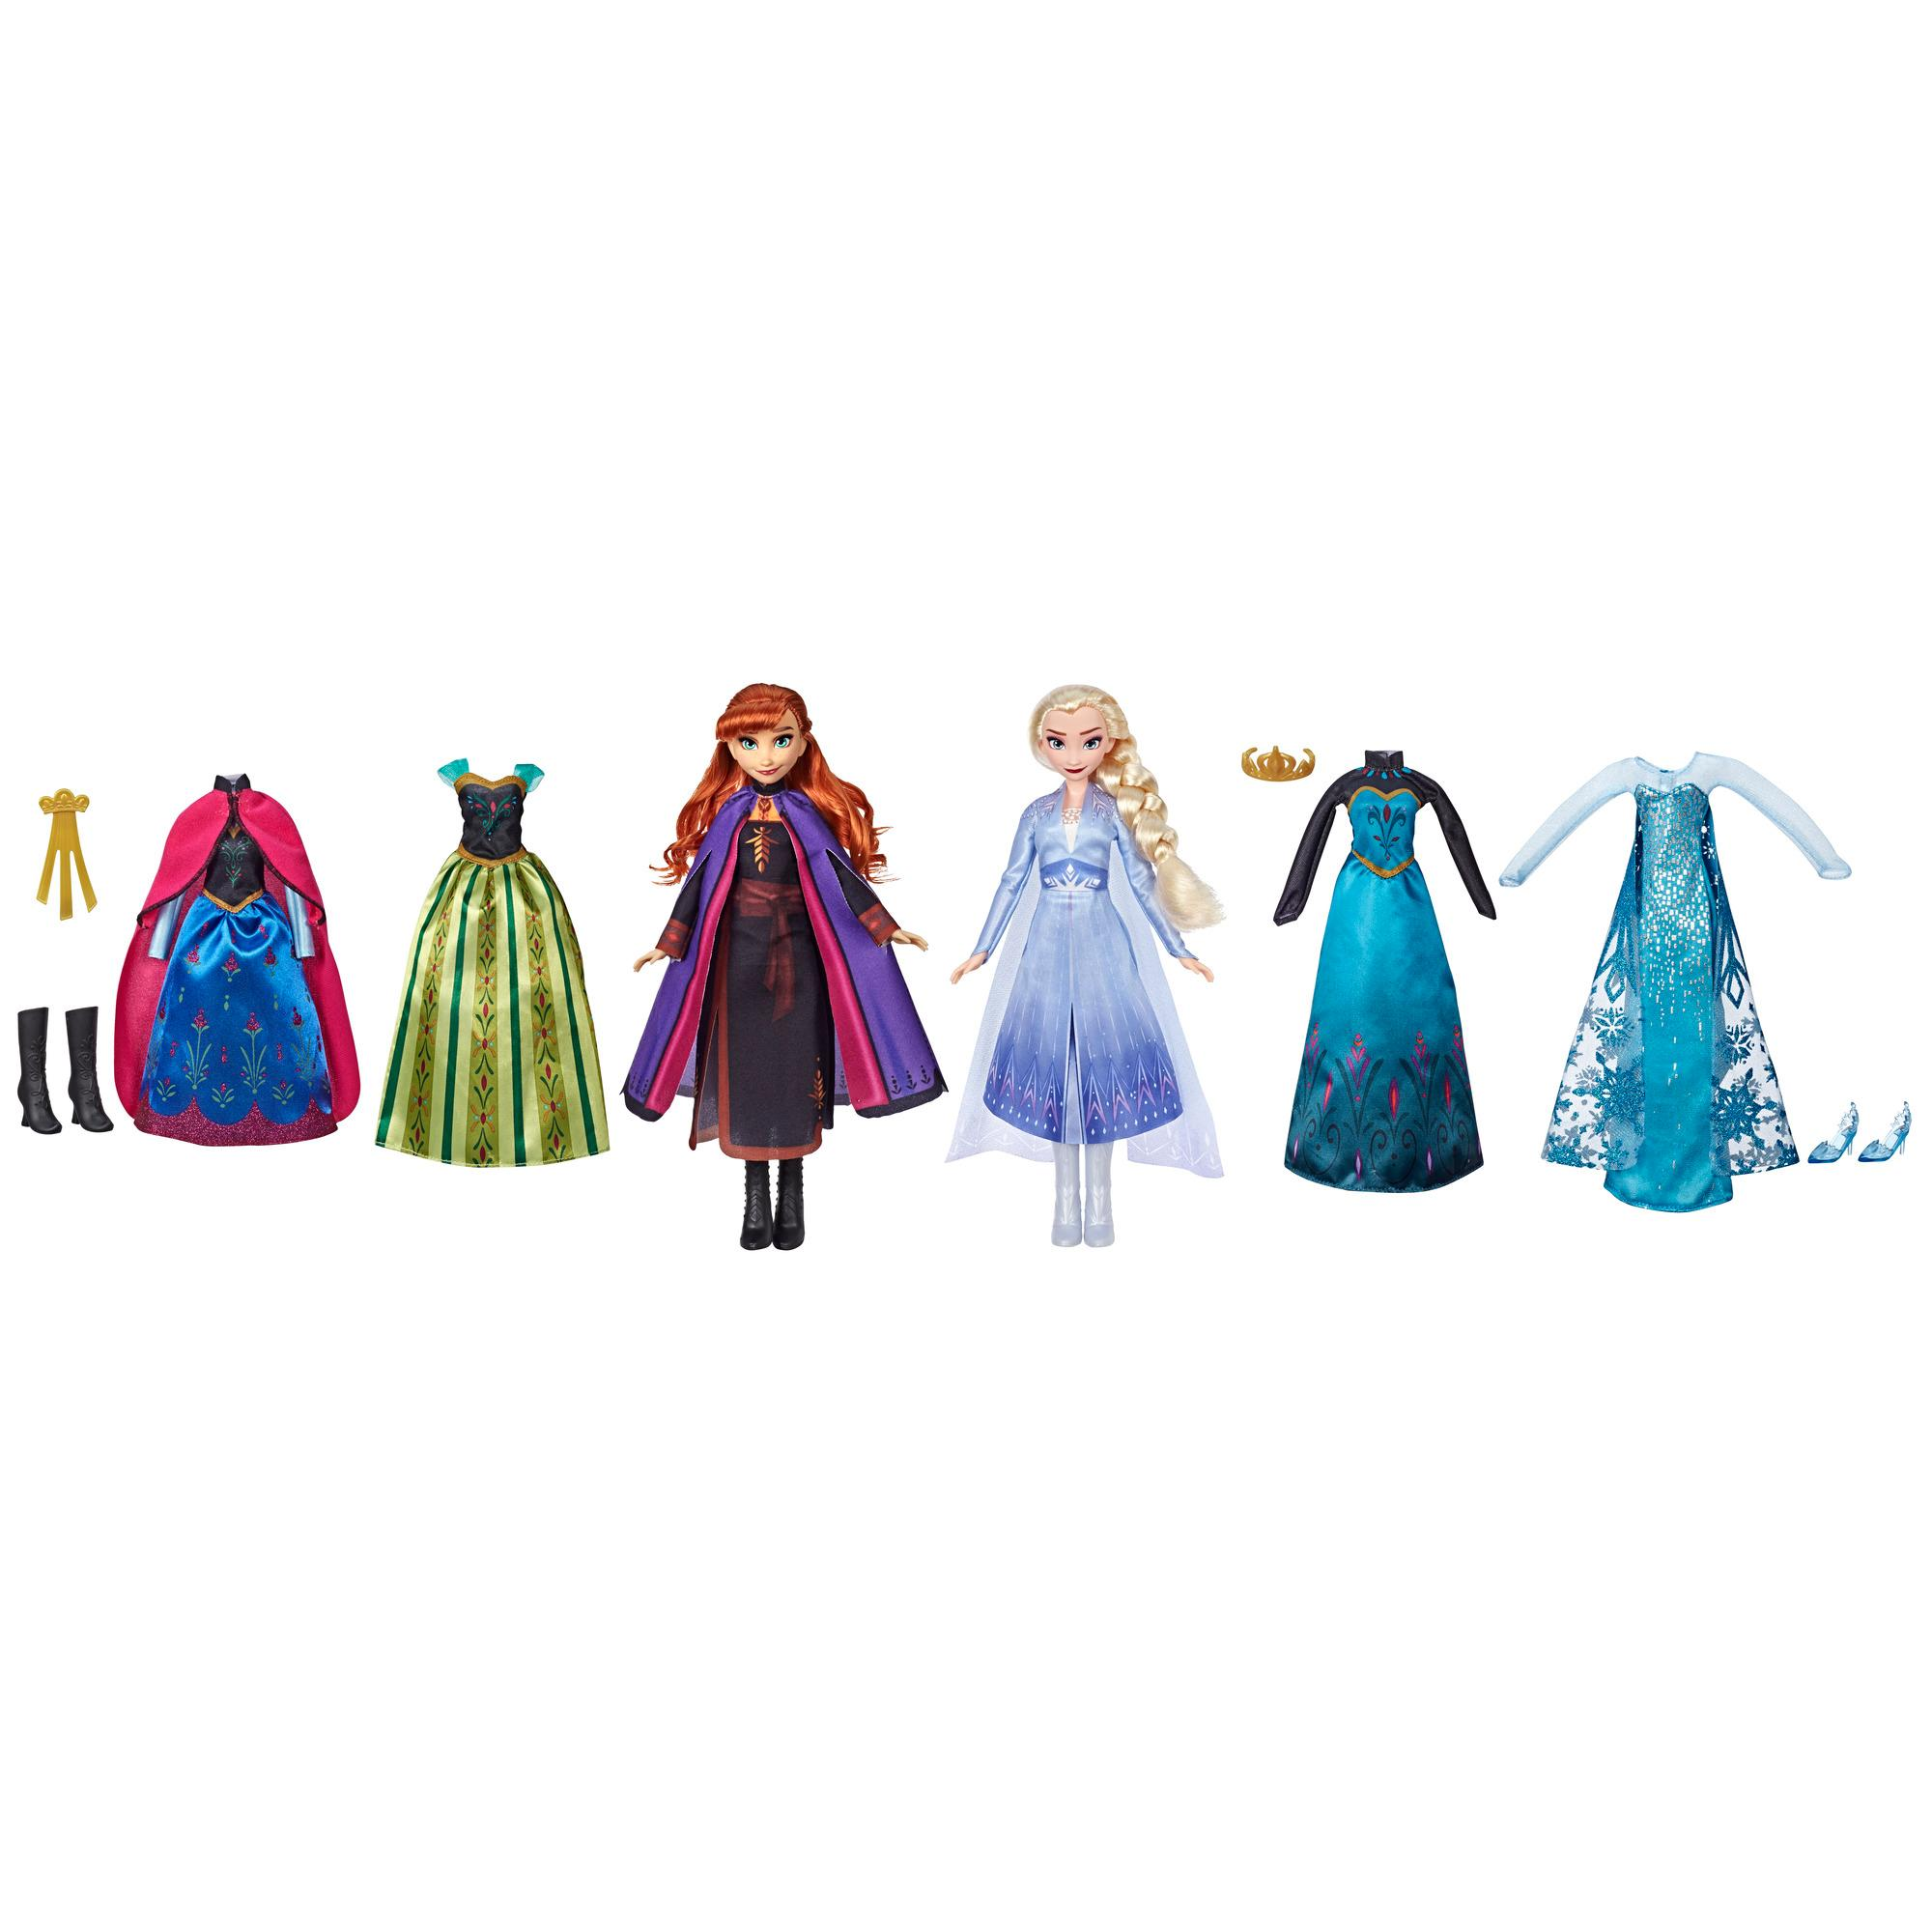 Disney Frozen Fashion Set, Anna and Elsa Fashion Dolls with 6 Outfits, Toy for Girls 3 and Up